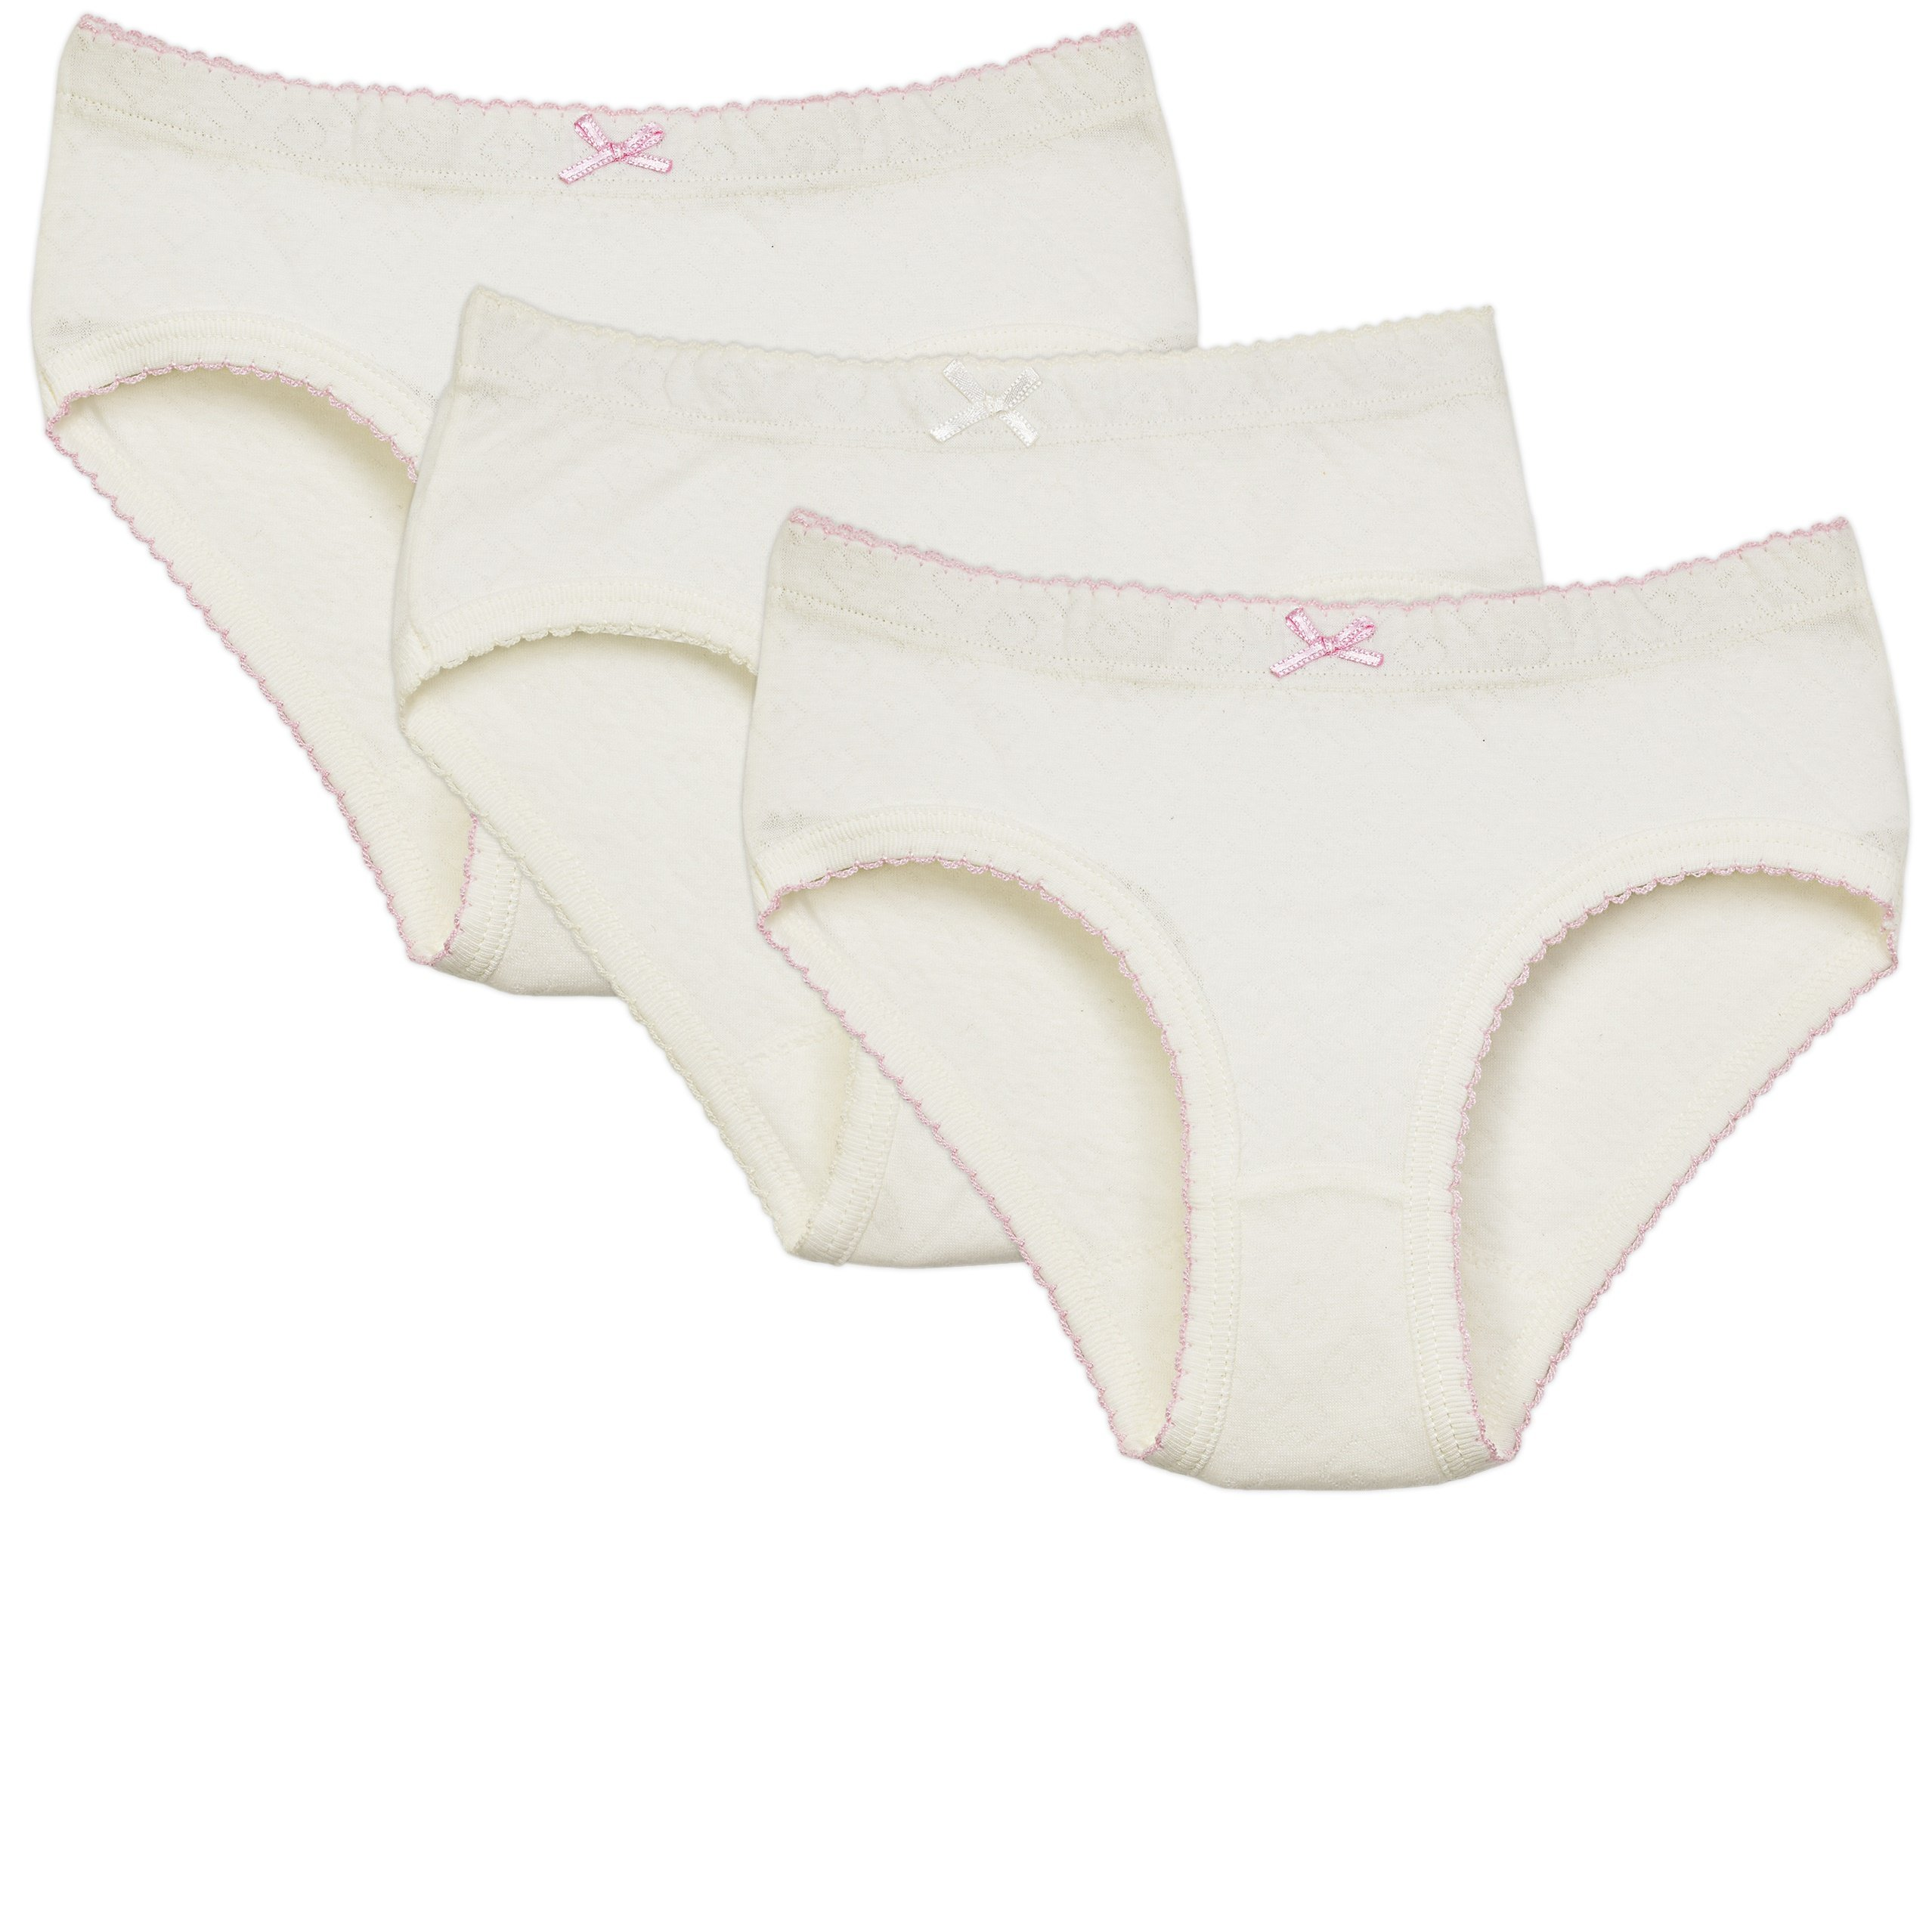 Amoureux Bebe Briefs Panties For Toddlers & Girls- Extra Soft Turkish Cotton Underwear- White Background With Heart Imprints & Pink Trimming, Size 8-9 (3 Pack)